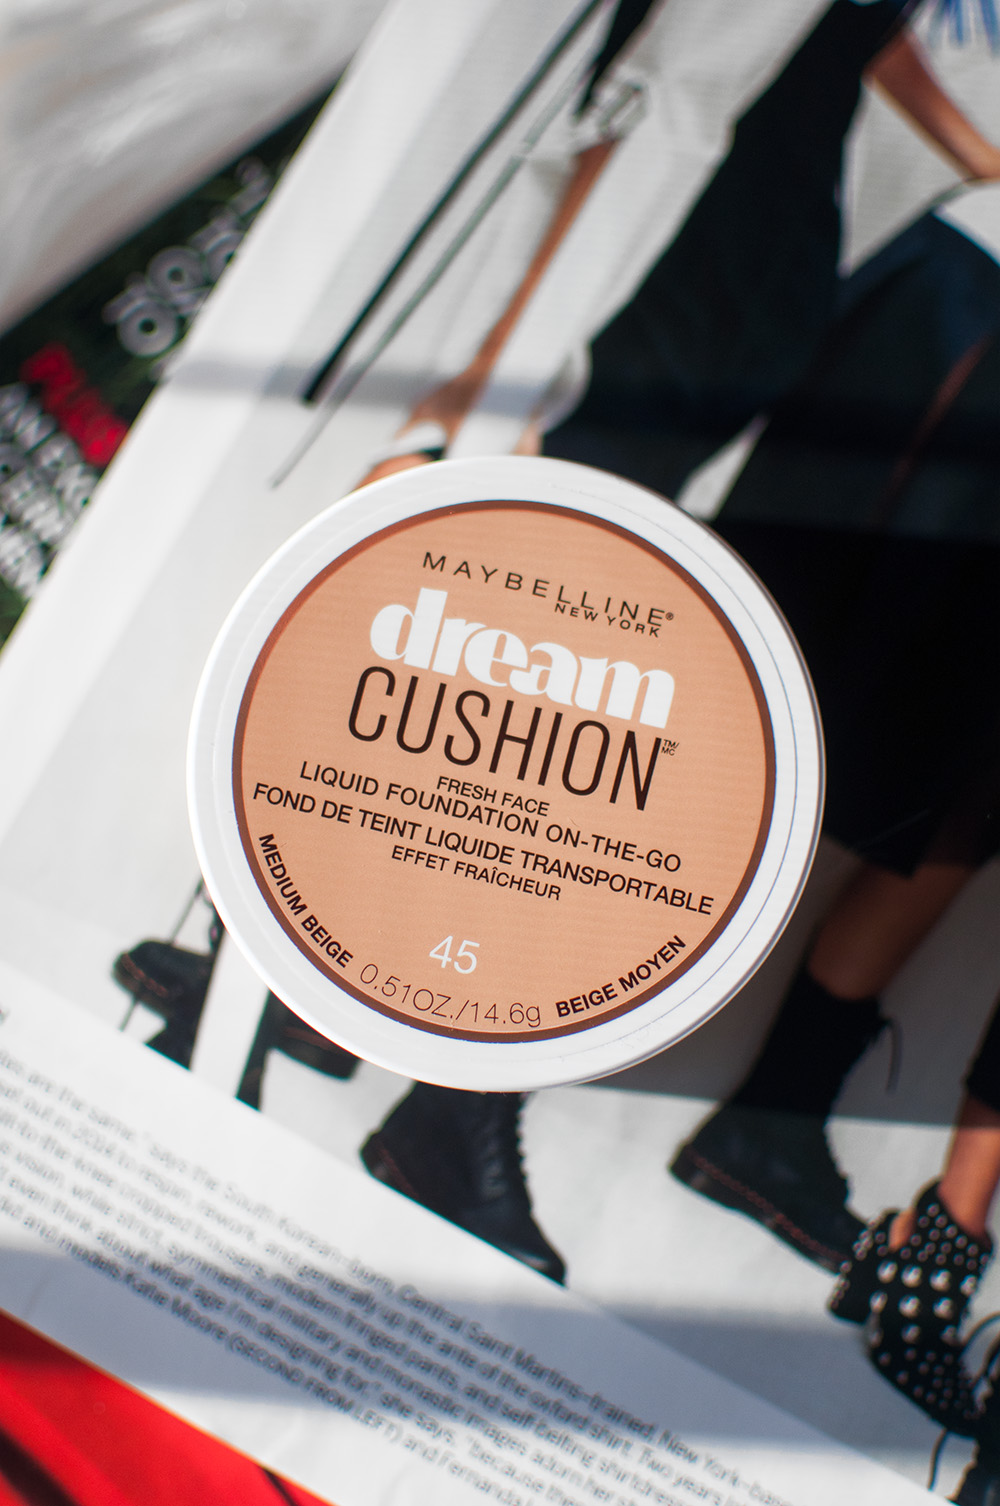 Maybelline Dream Cushion Fresh Face Liquid Foundation On-the-Go Review, maybelline dream cushion foundation, maybelline cushion foundation review, maybelline dream cushion on the go foundation review, maybelline cushion foundation review on medium skin